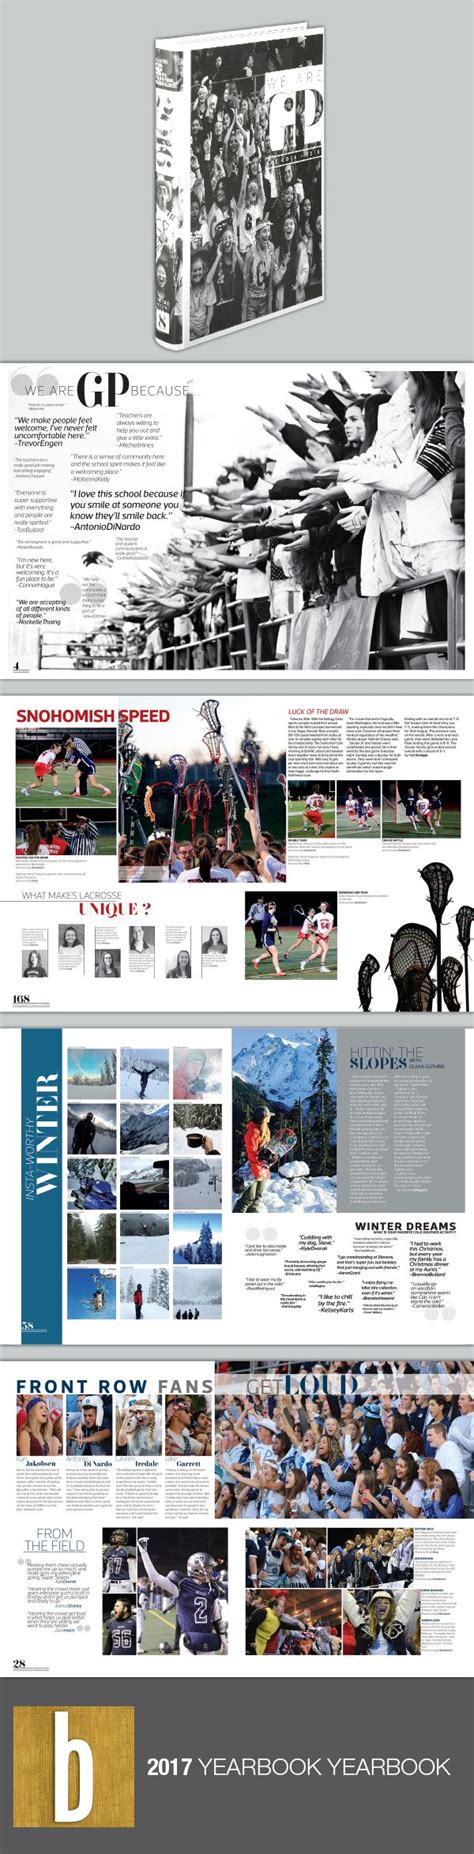 yearbook layout rules 729 best yearbook sponsor images on pinterest yearbook